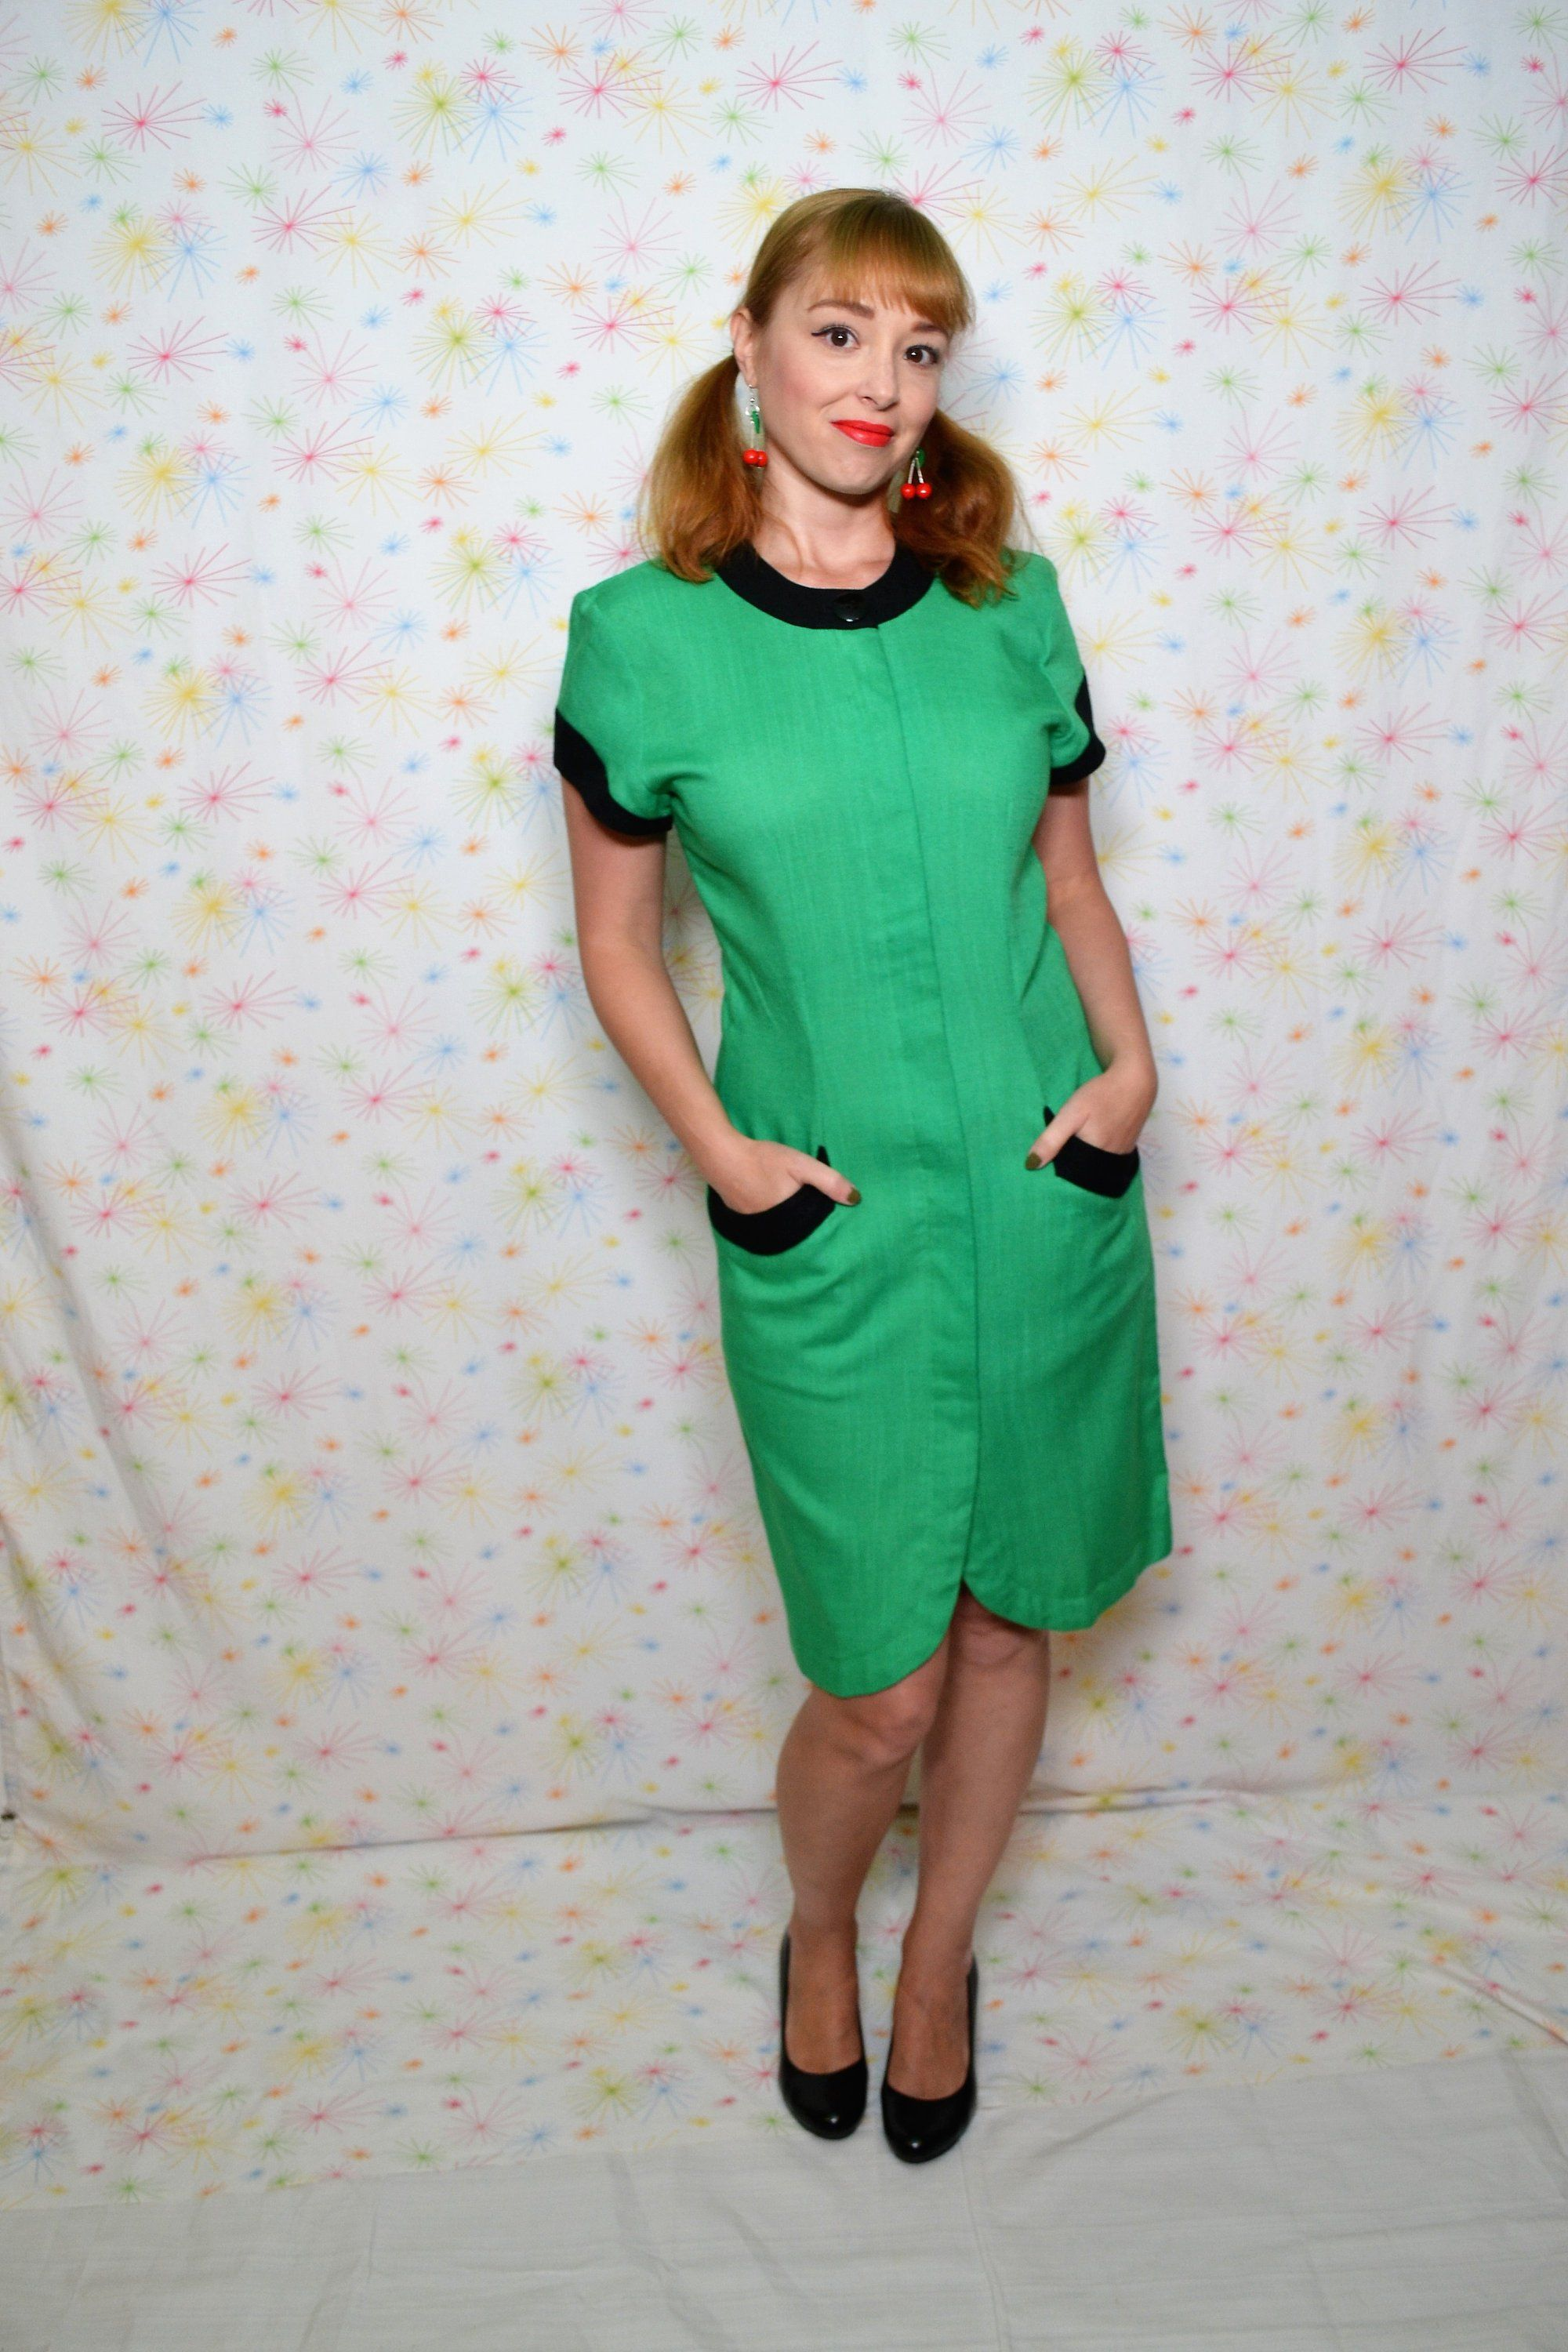 S green sheath dress small vintage s mod style clothing s